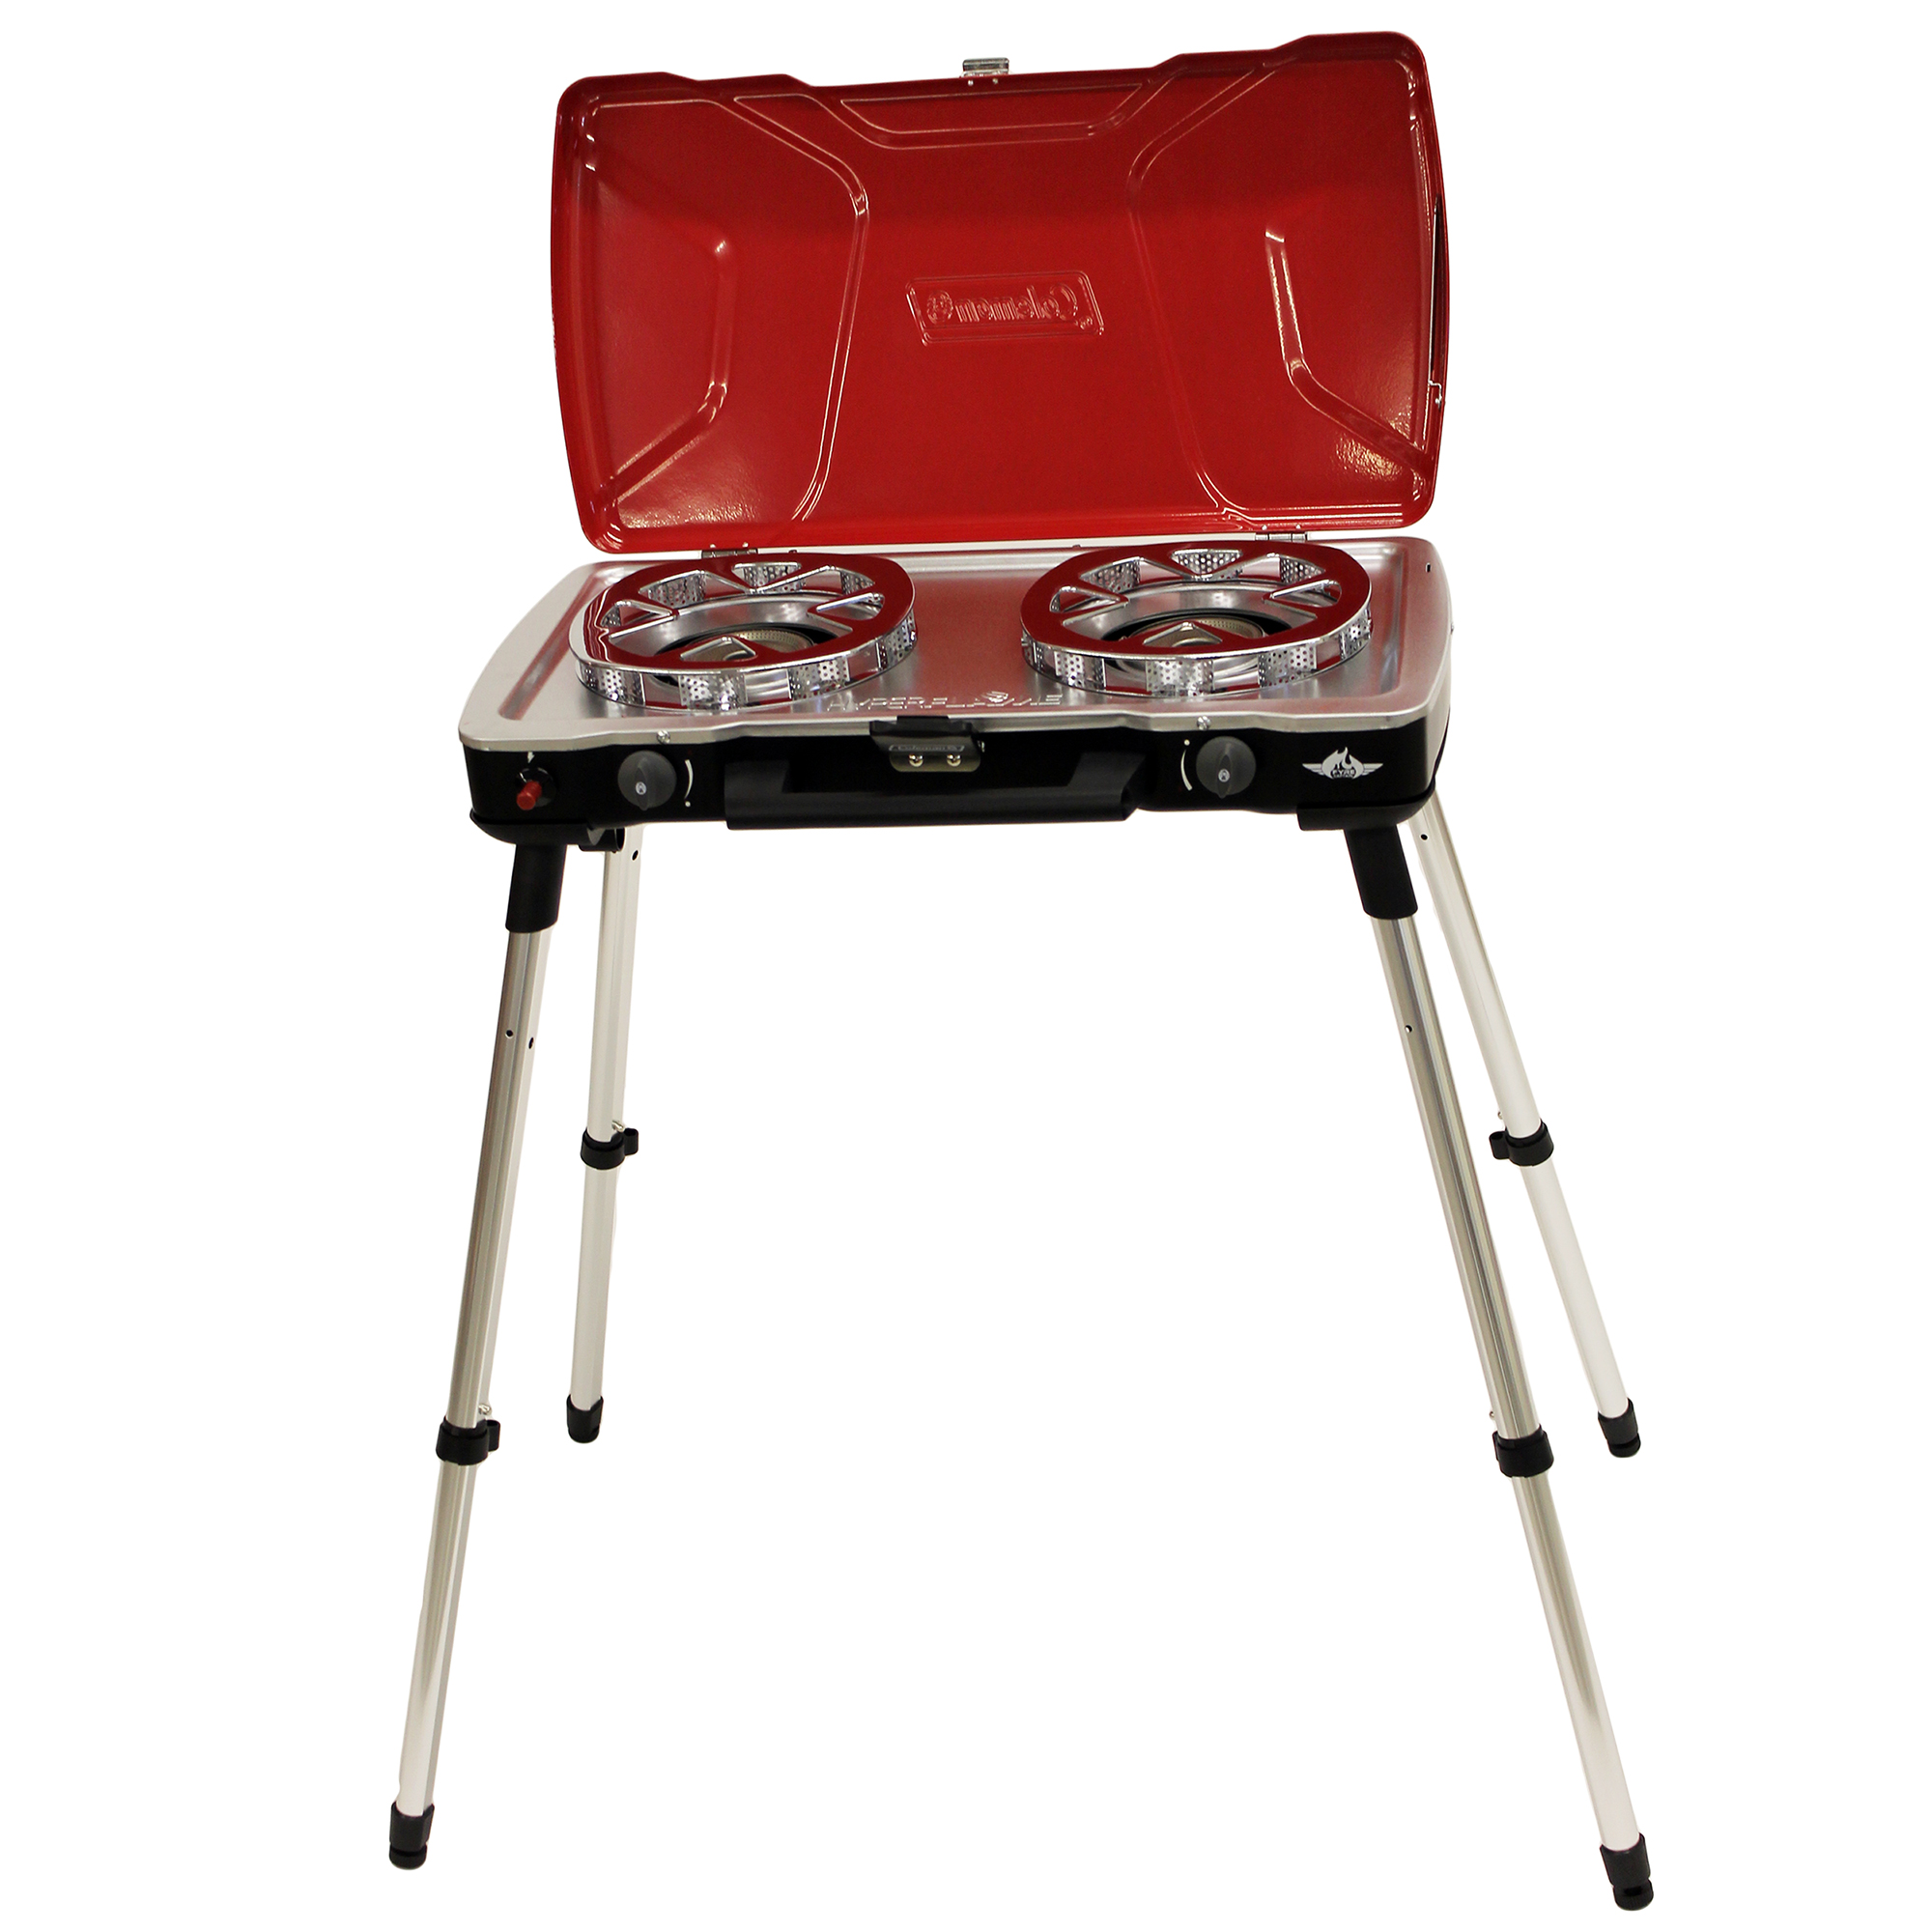 Coleman HyperFlame Camp Stove